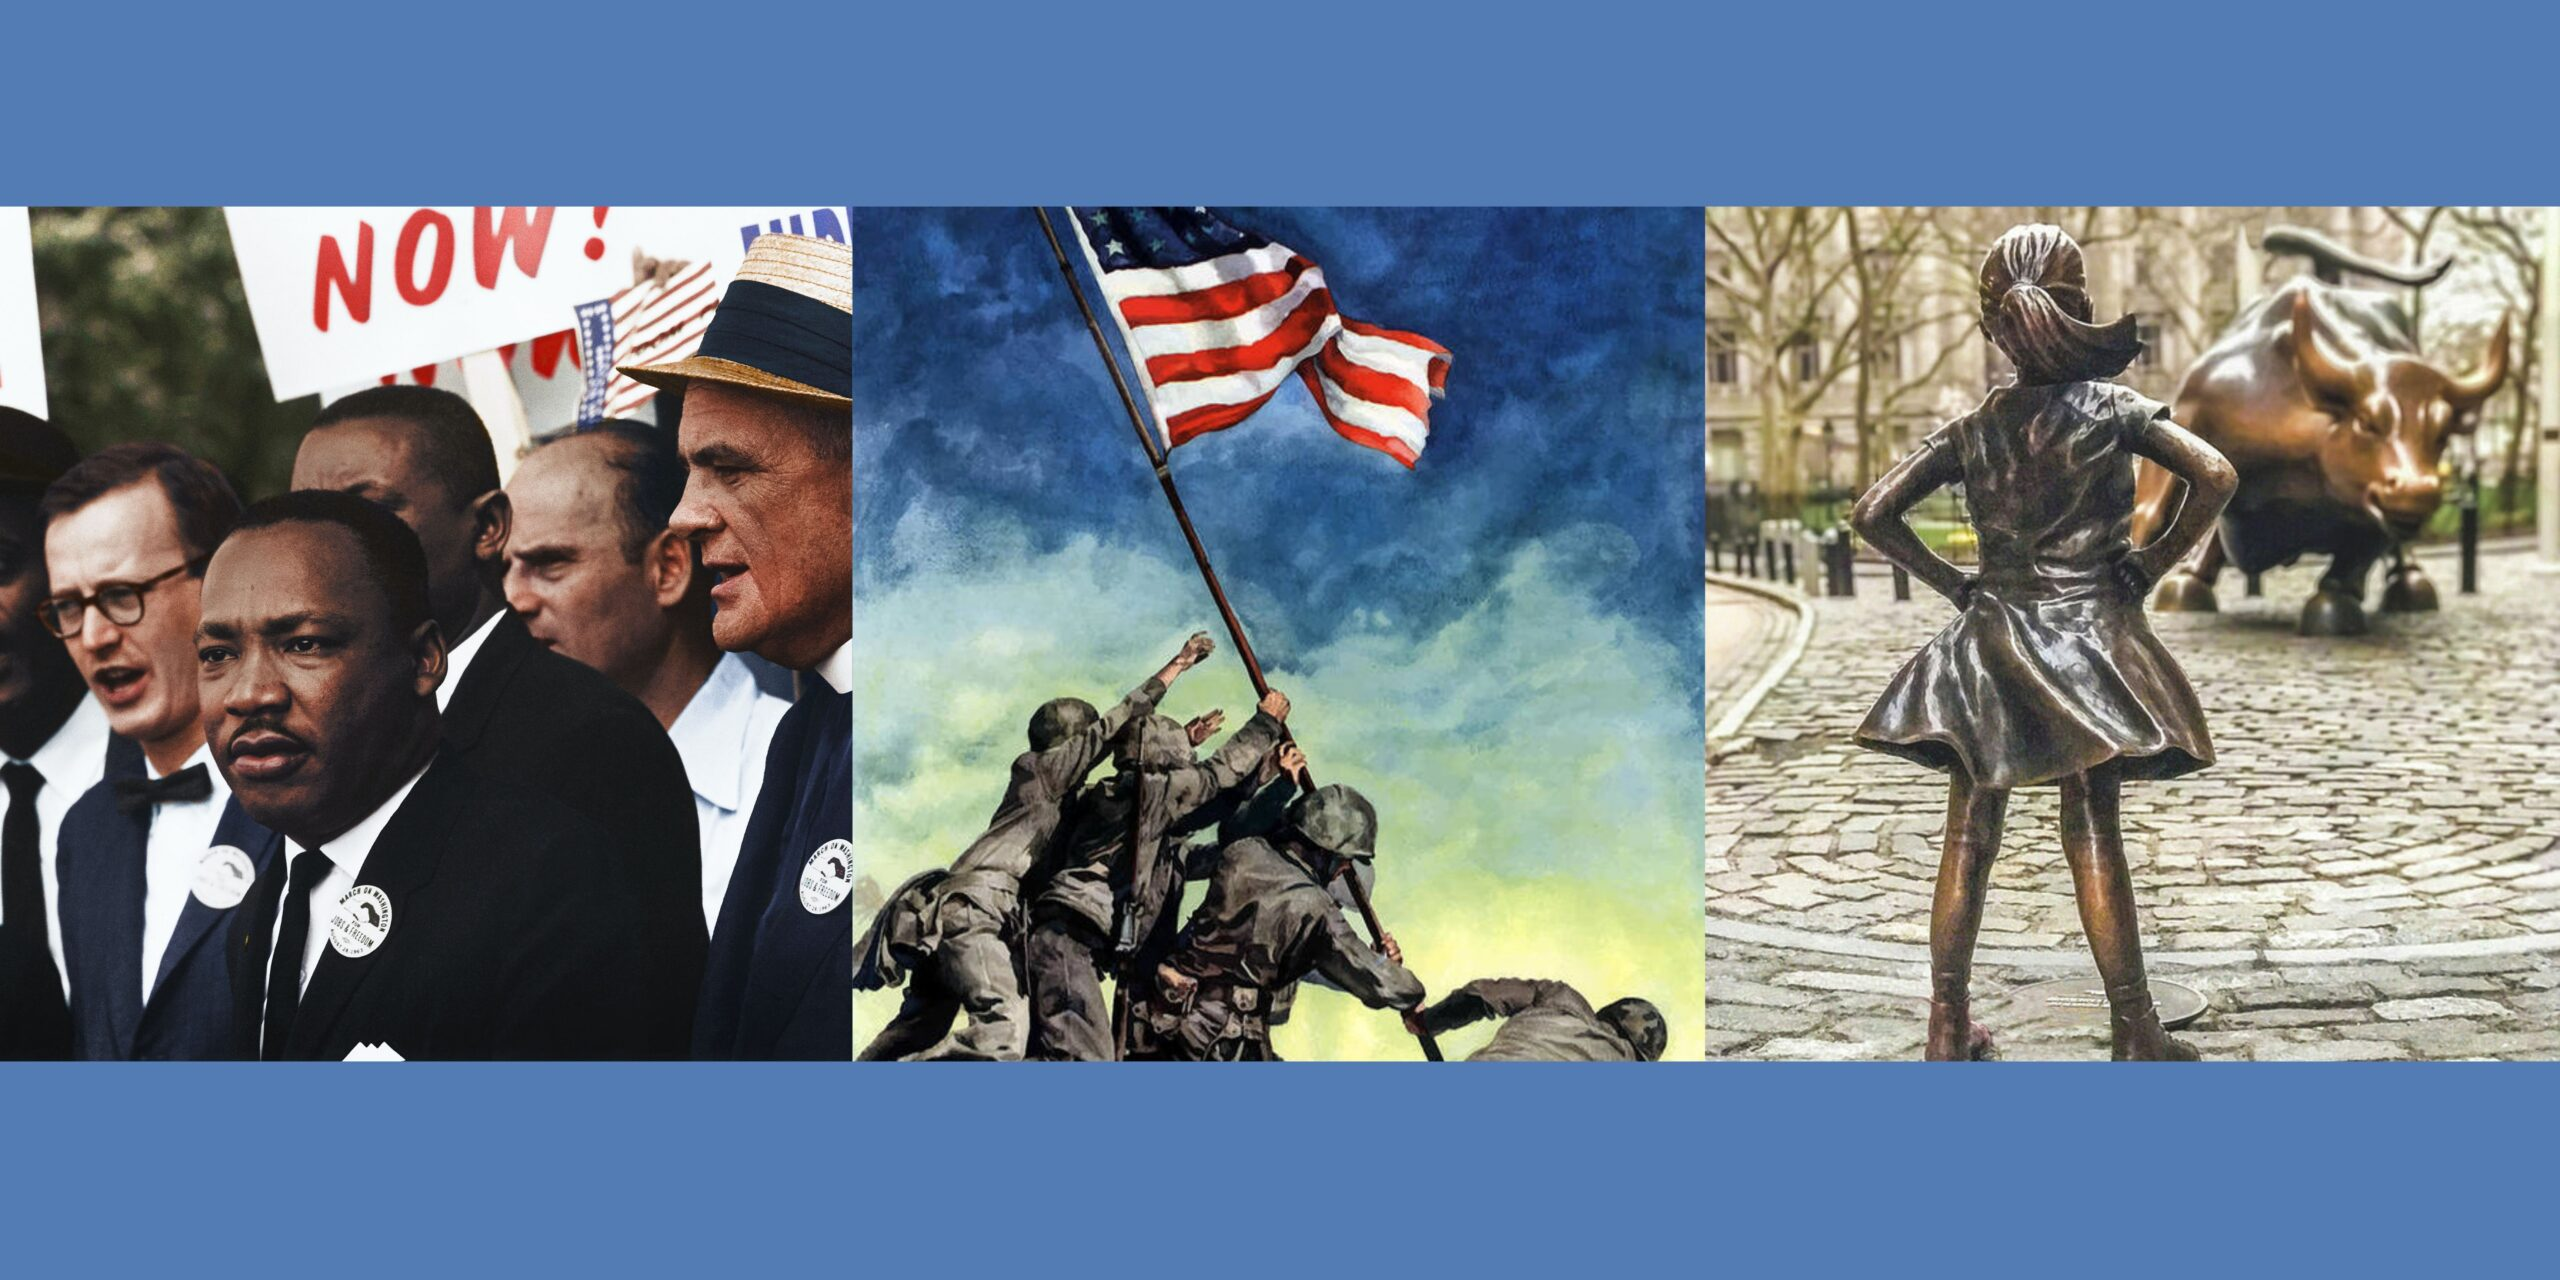 Three images: Martin Luther King Jr.; Two Flag-Raisings at the Battle of Iwo Jima; Fearless Girl facing the Wall Street Bull